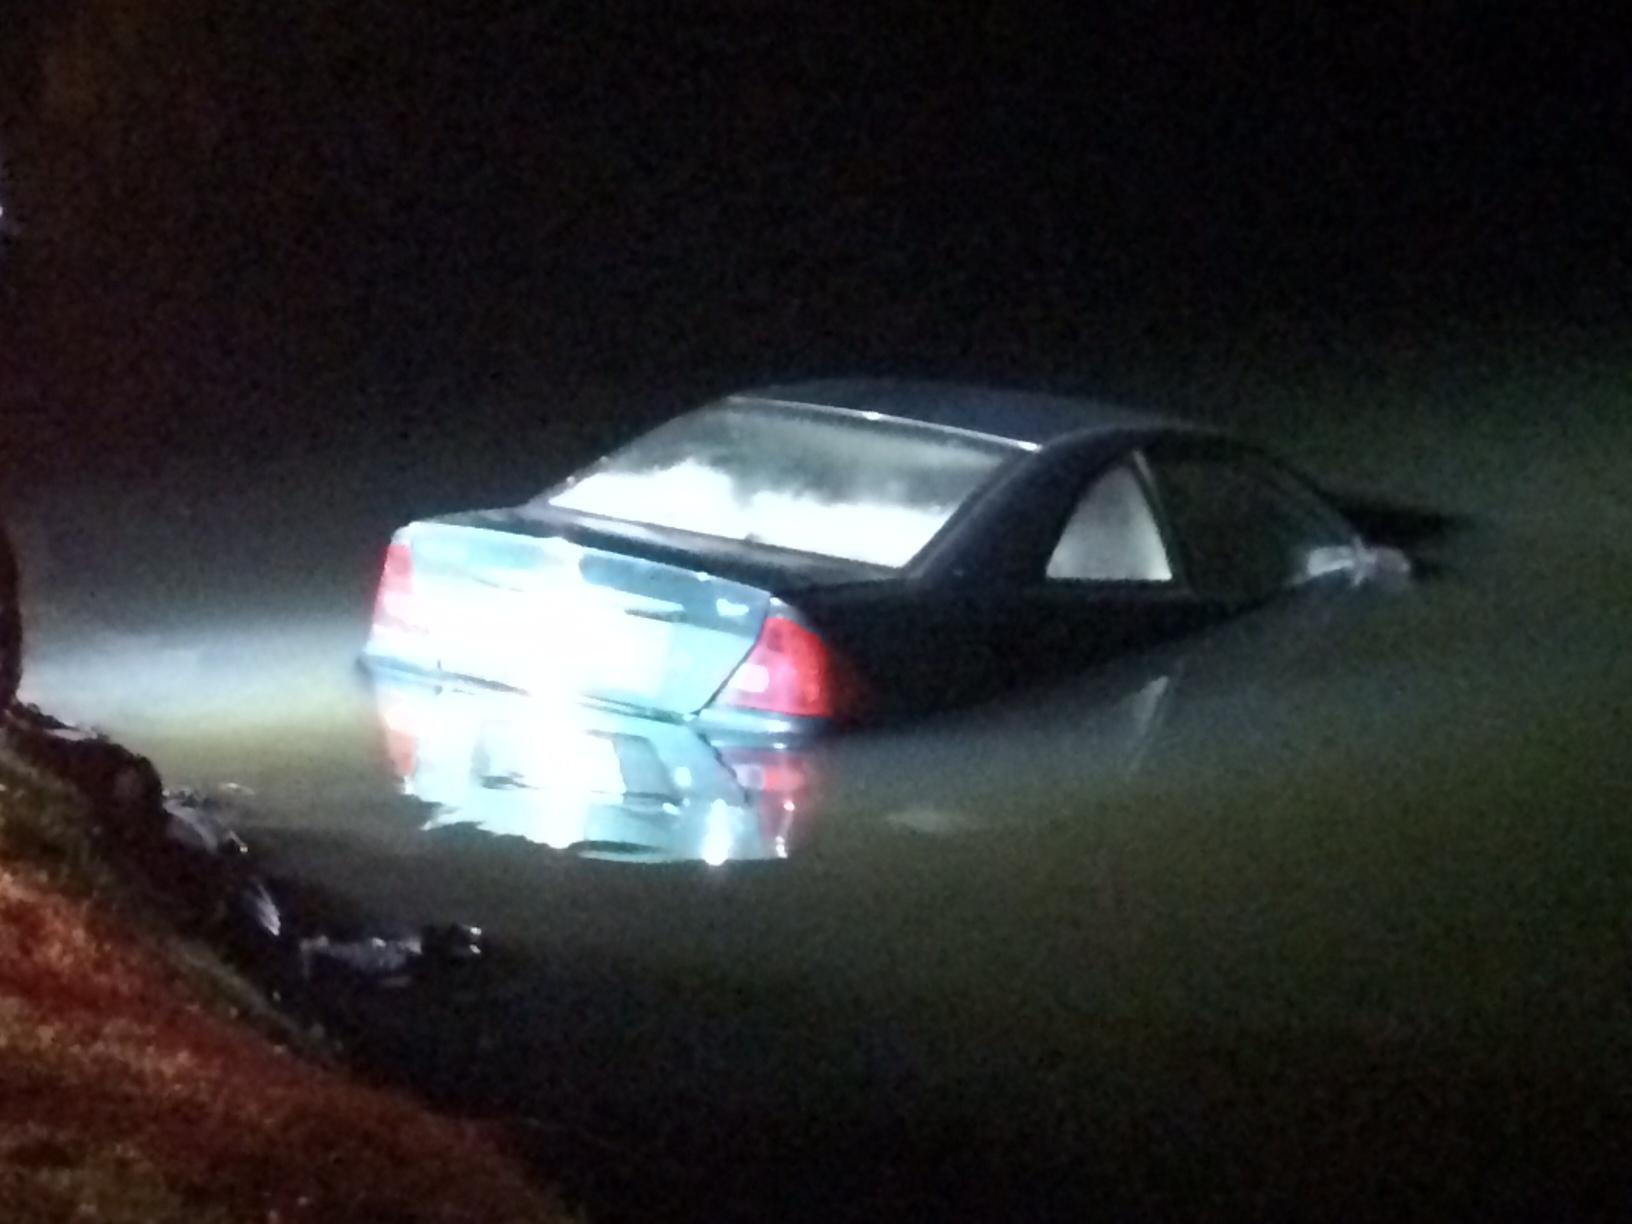 Emergency officials say a young man drove his vehicle into the lake at the KOA campgrounds Sunday night. (WLOS)